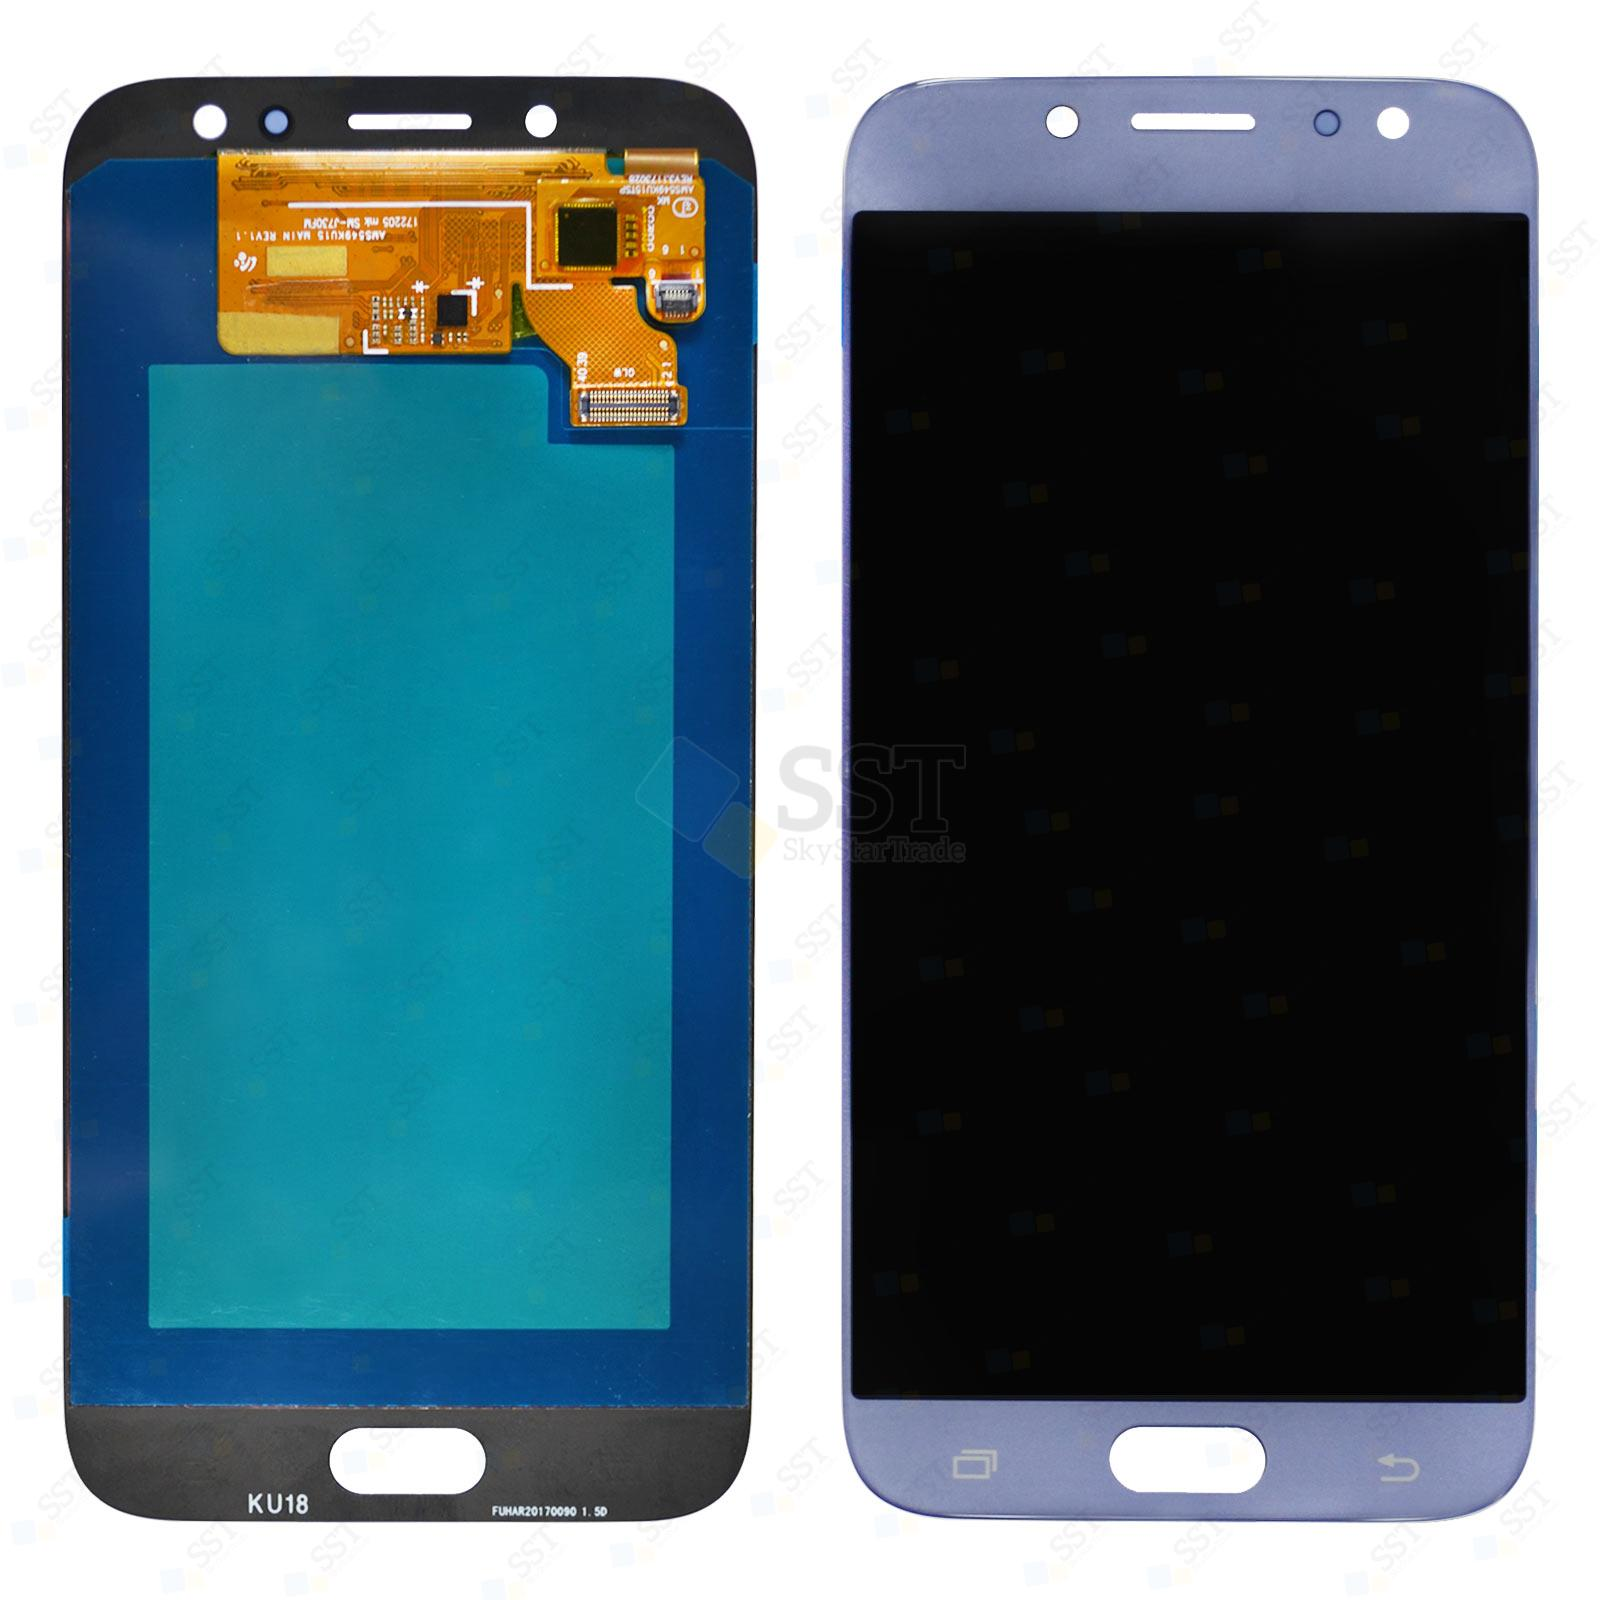 Samsung Galaxy J7 Pro J730F J730FM J730G J730GM/DS J730K, J7 2017 J730F/DS J730FM/DS LCD Screen Digitizer, Blue, High Quality, Not Compatible with 8.0 Android Oreo